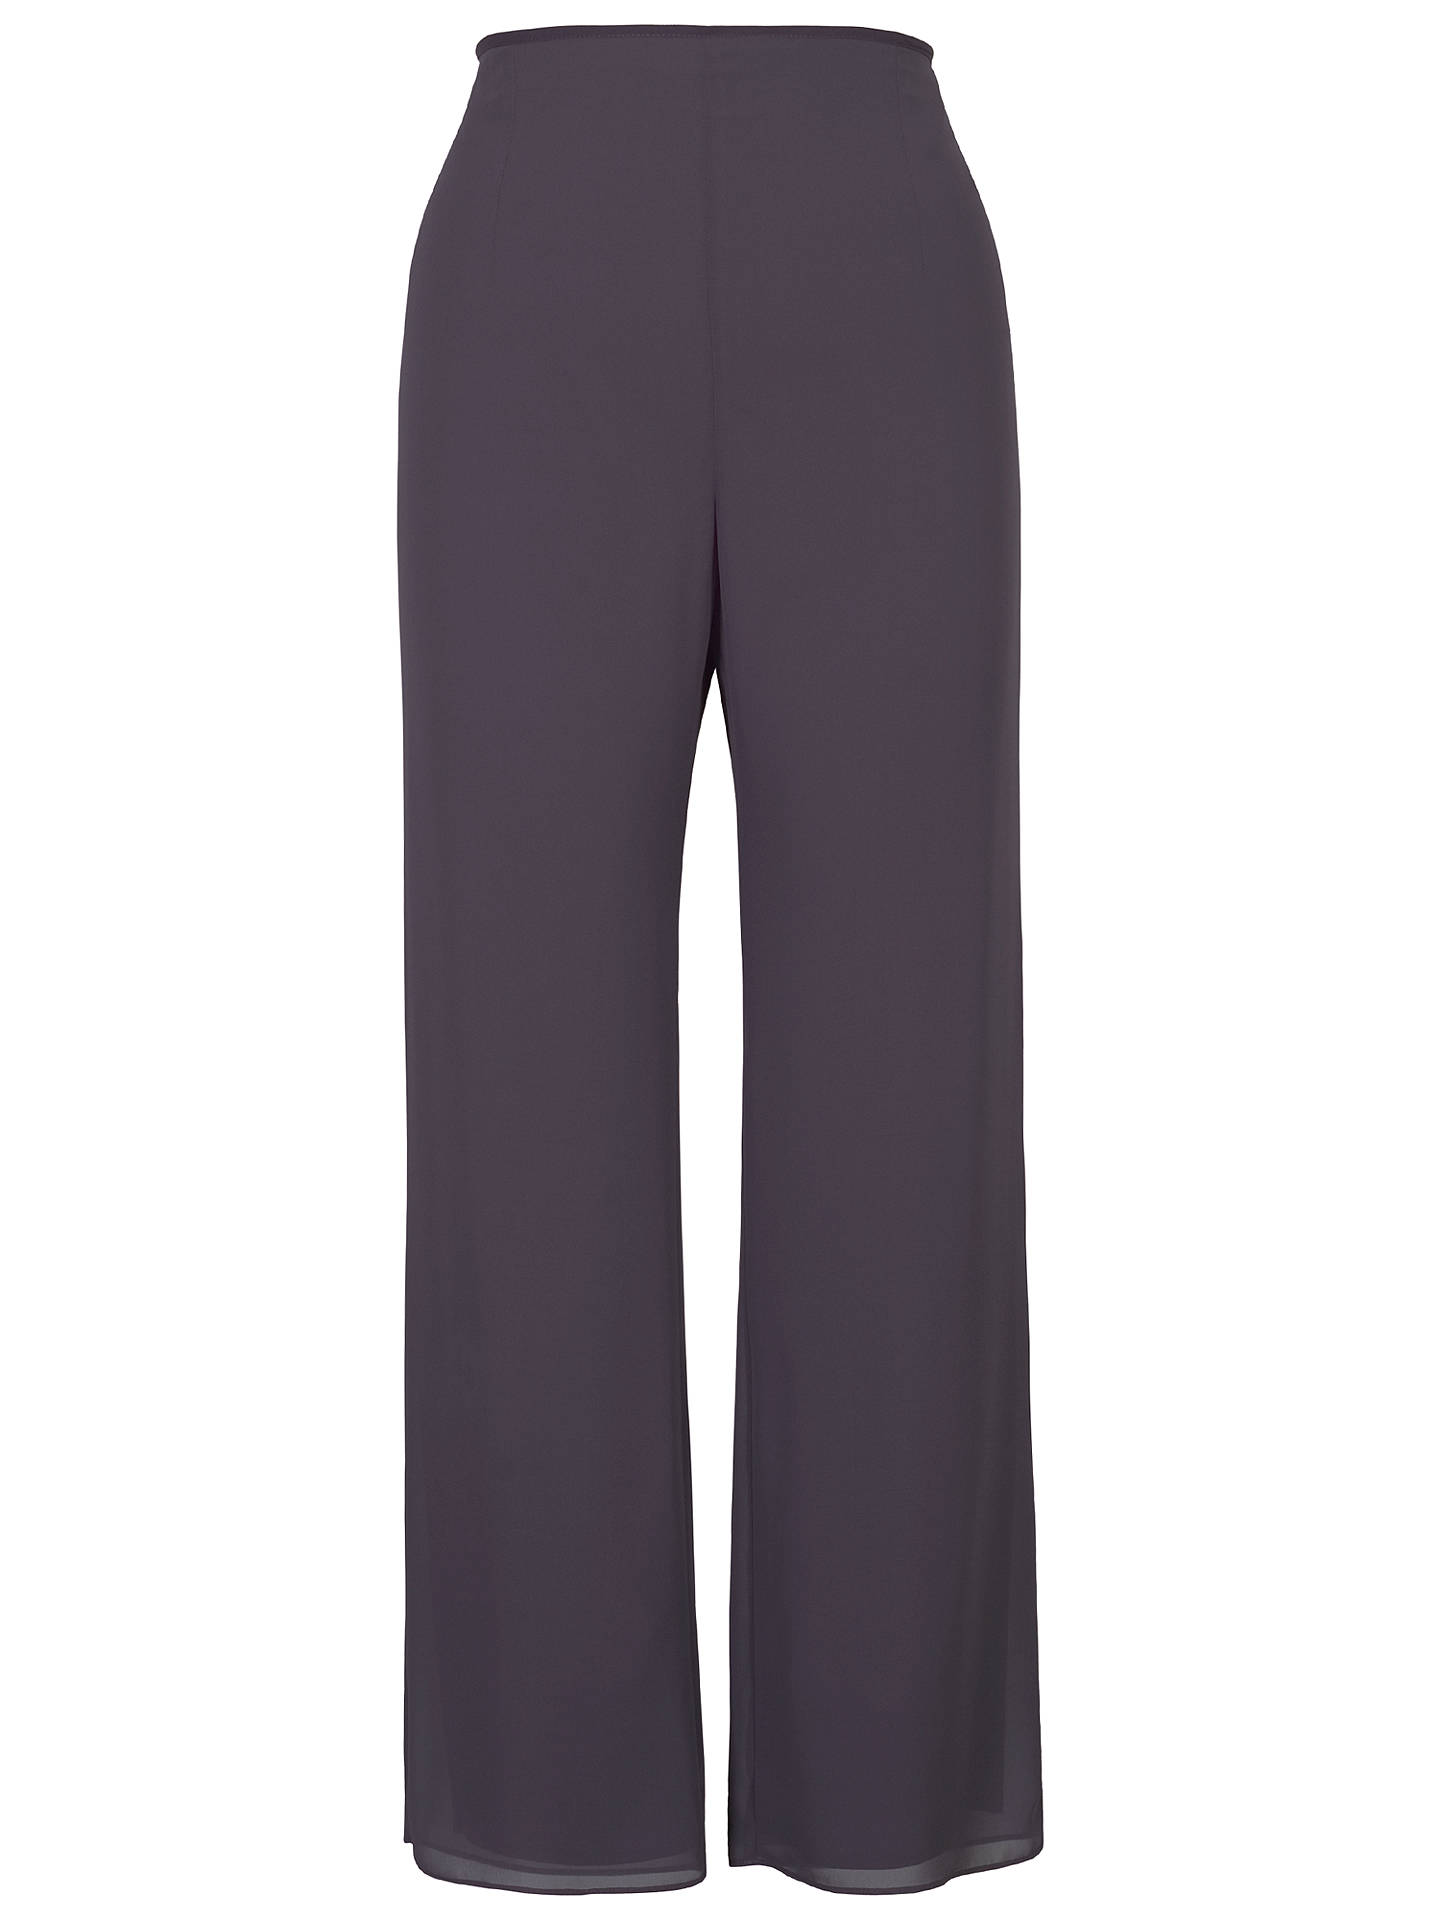 BuyChesca Satin Trim Chiffon Trousers, Pewter, 12 Online at johnlewis.com